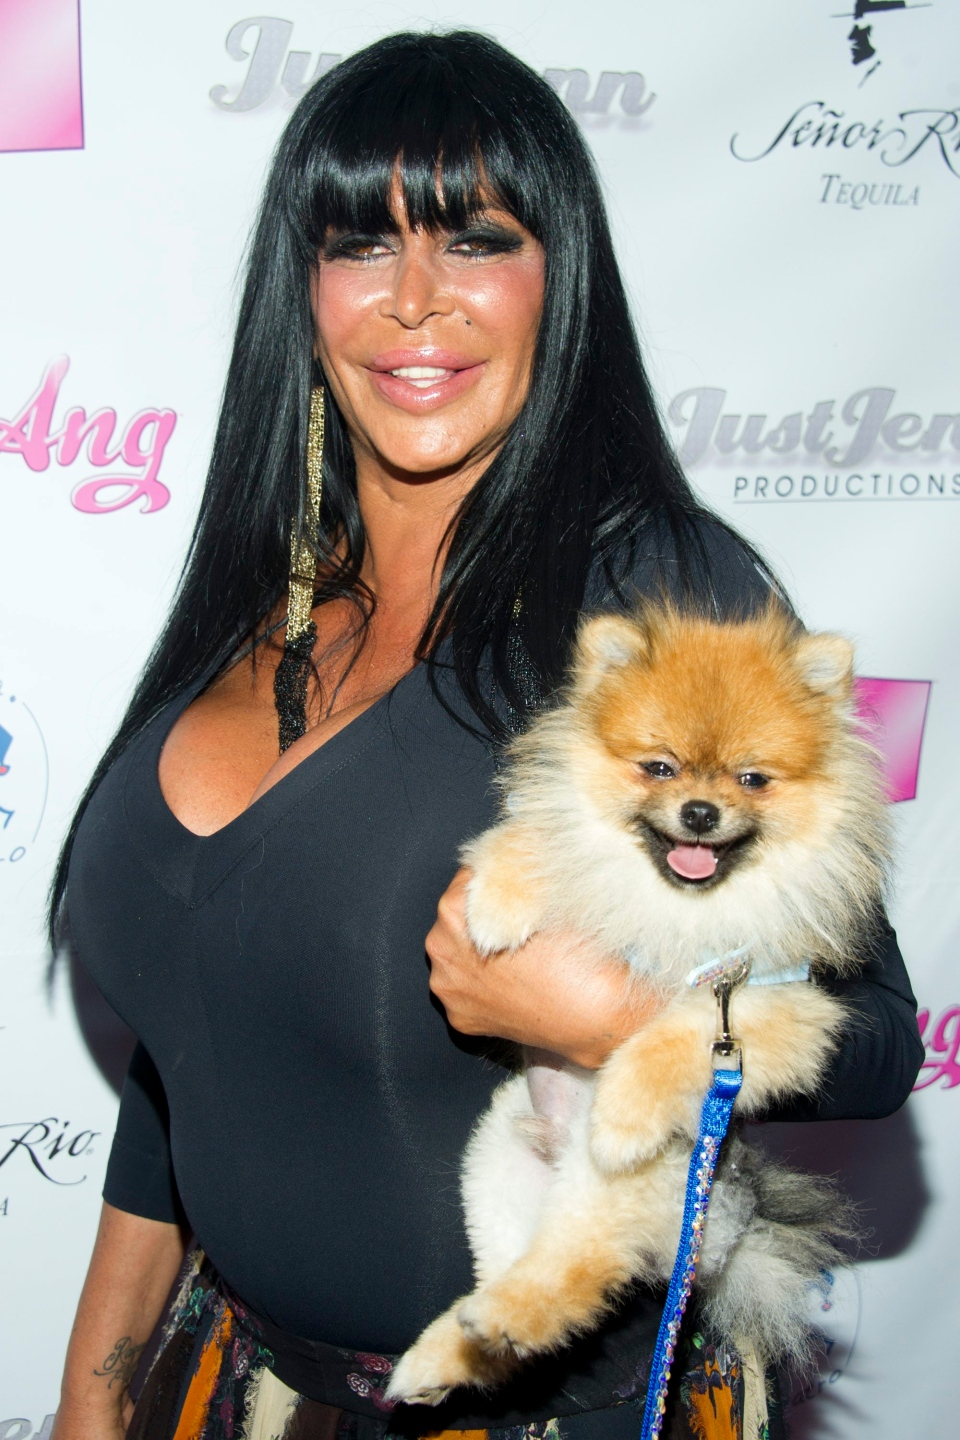 In this July 8, 2012, file photo, Angela Raiola, known as Big Ang, and her dog Little Louie arrive to the premiere of her VH1 reality show 'Big Ang' in New York. (Photo by Charles Sykes/Invision/AP, File)